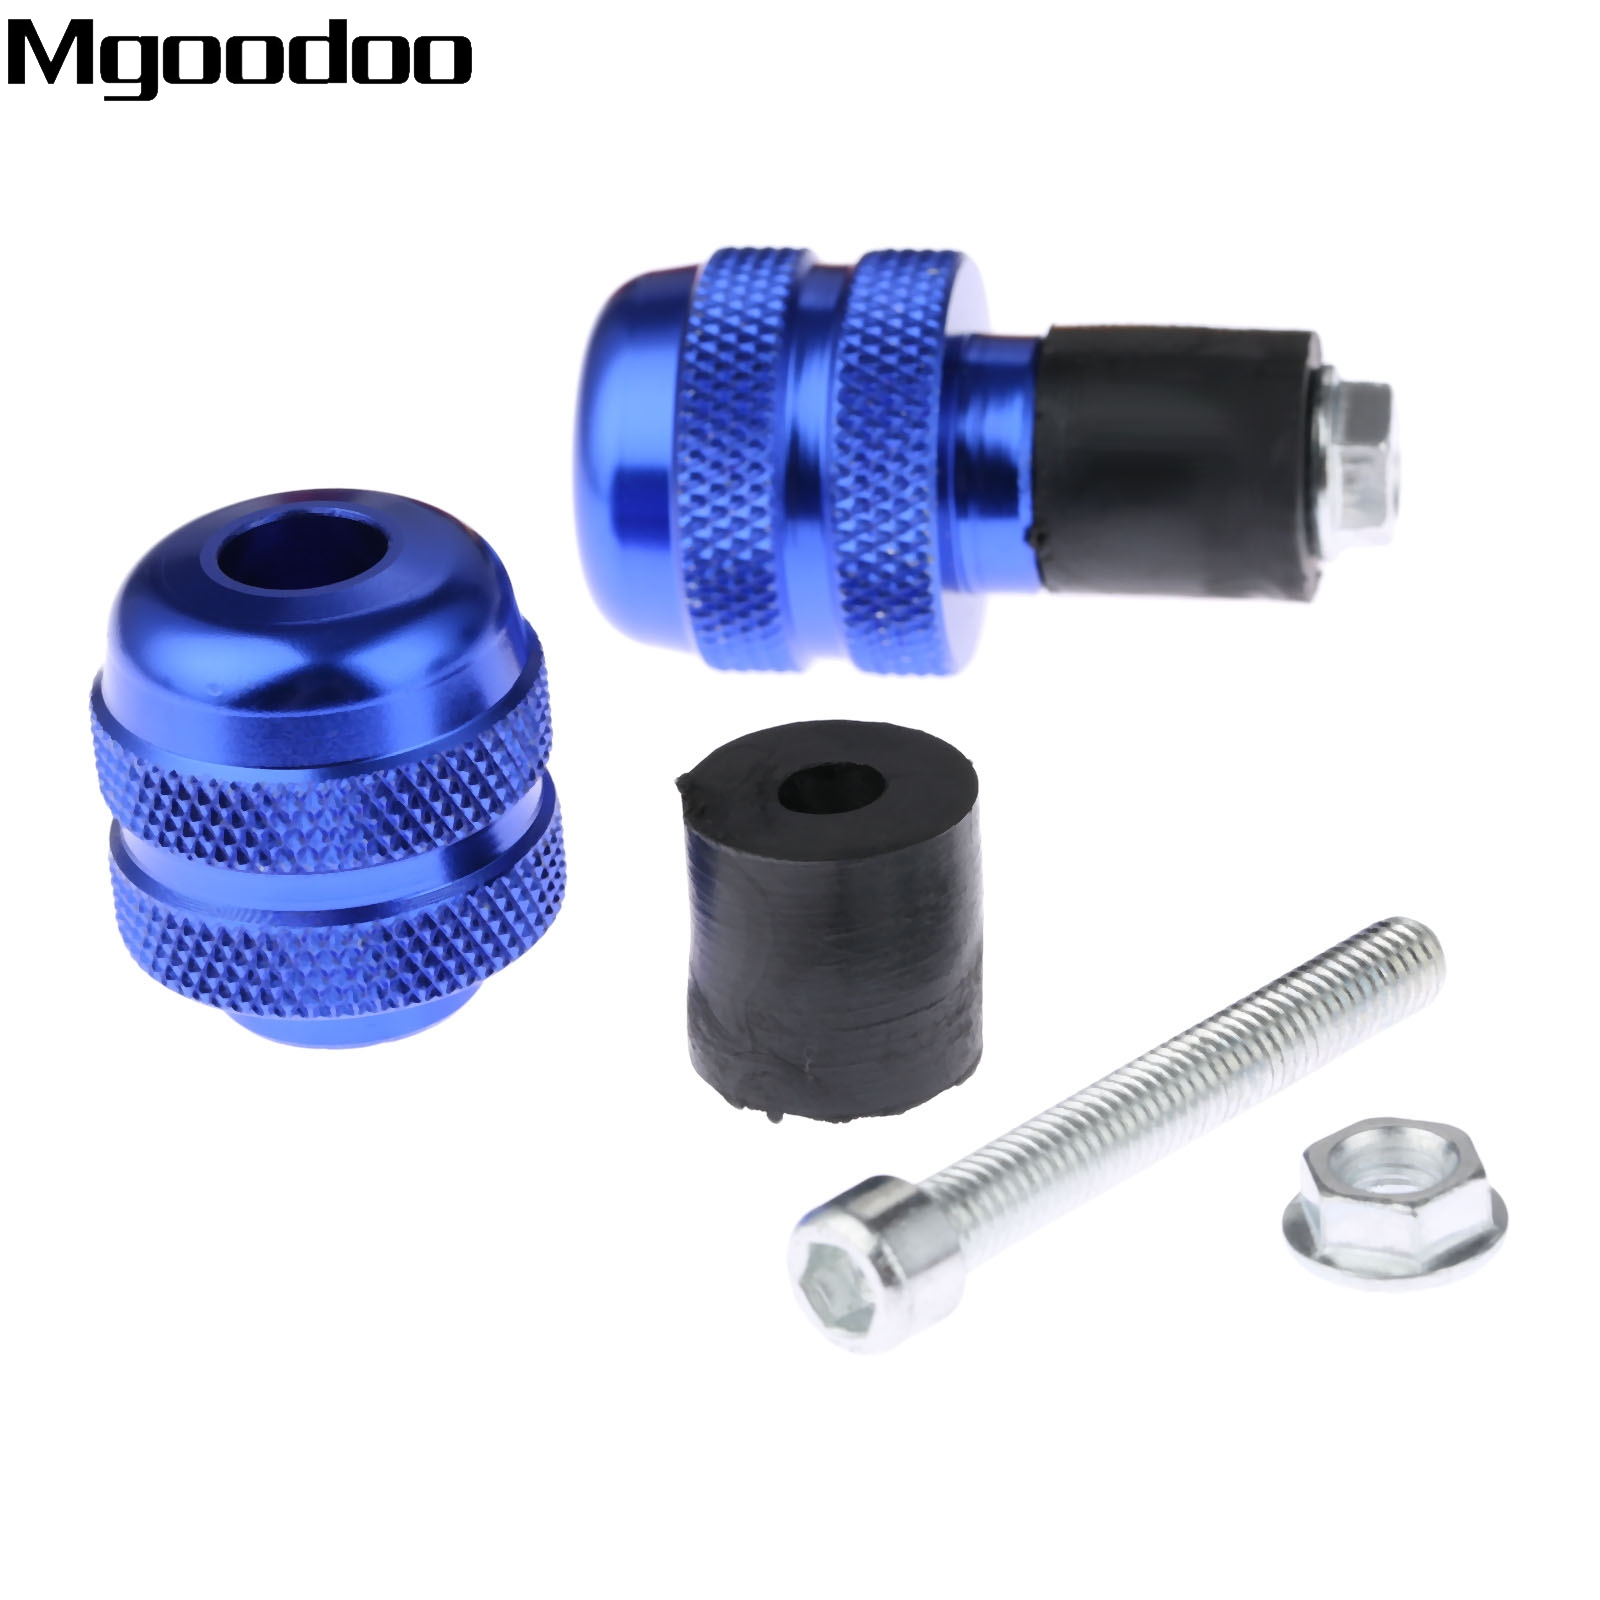 2x 7 8 quot 22mm Aluminum Motorcycle Handlebar Gear Balanced Plug Slider Universal Handle Bar End Weights Grips Cap For Suzuki in Grips from Automobiles amp Motorcycles